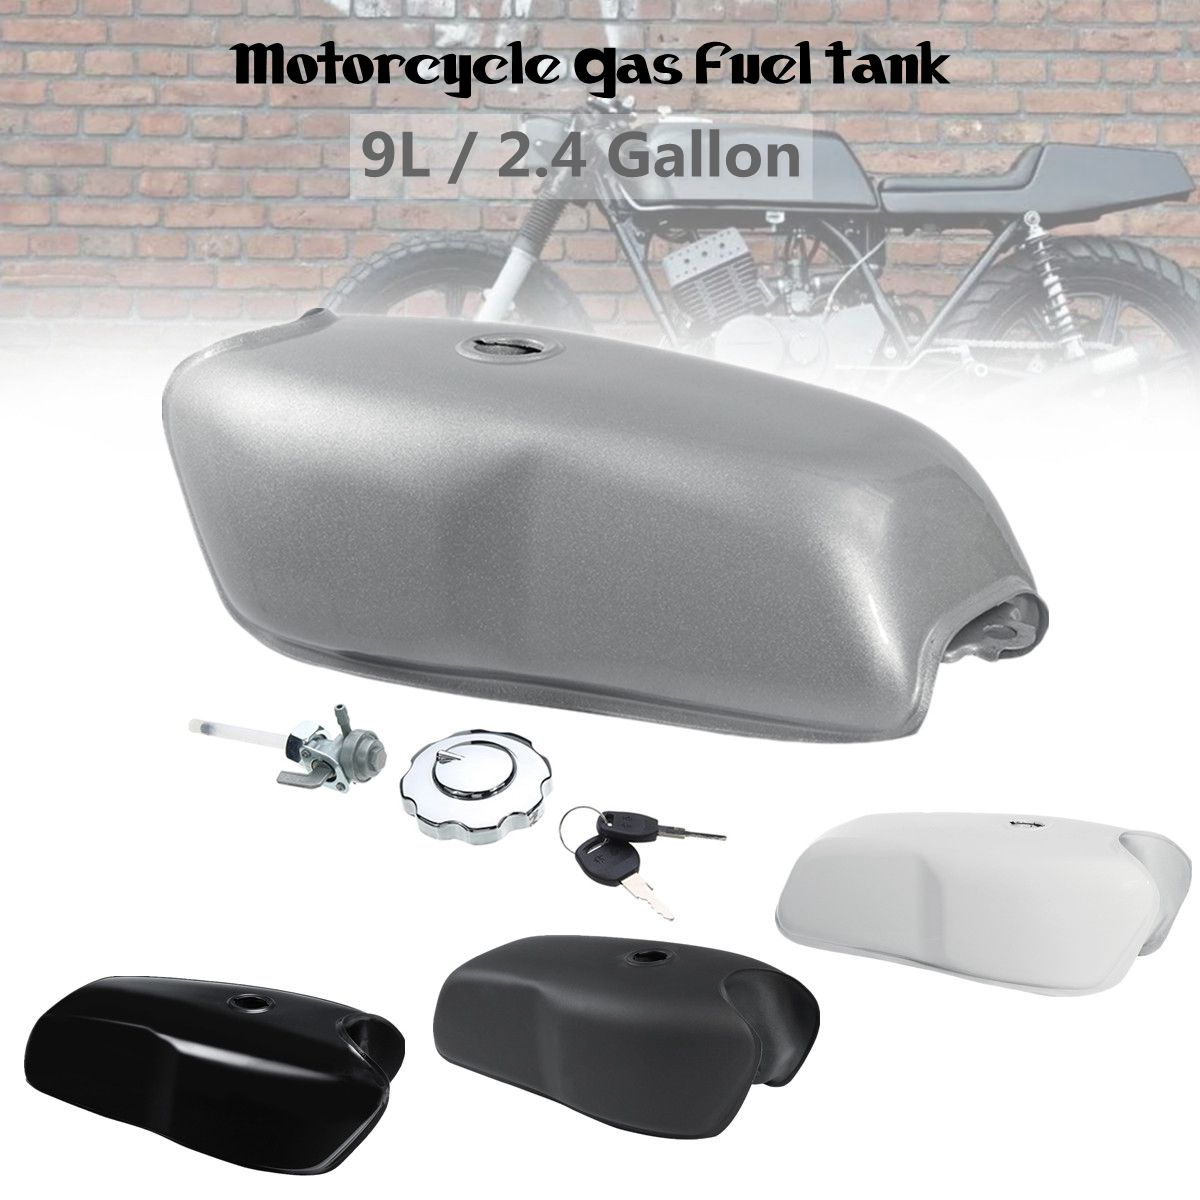 Motorcycle 9L 2.4 Gallon Petrol Fuel Gas Tank Cafe Racer Vintage For Yamaha for Honda for BMW motorcycle rafe racer fuel gas cap petrol tank cover aluminum for ducati scrambler